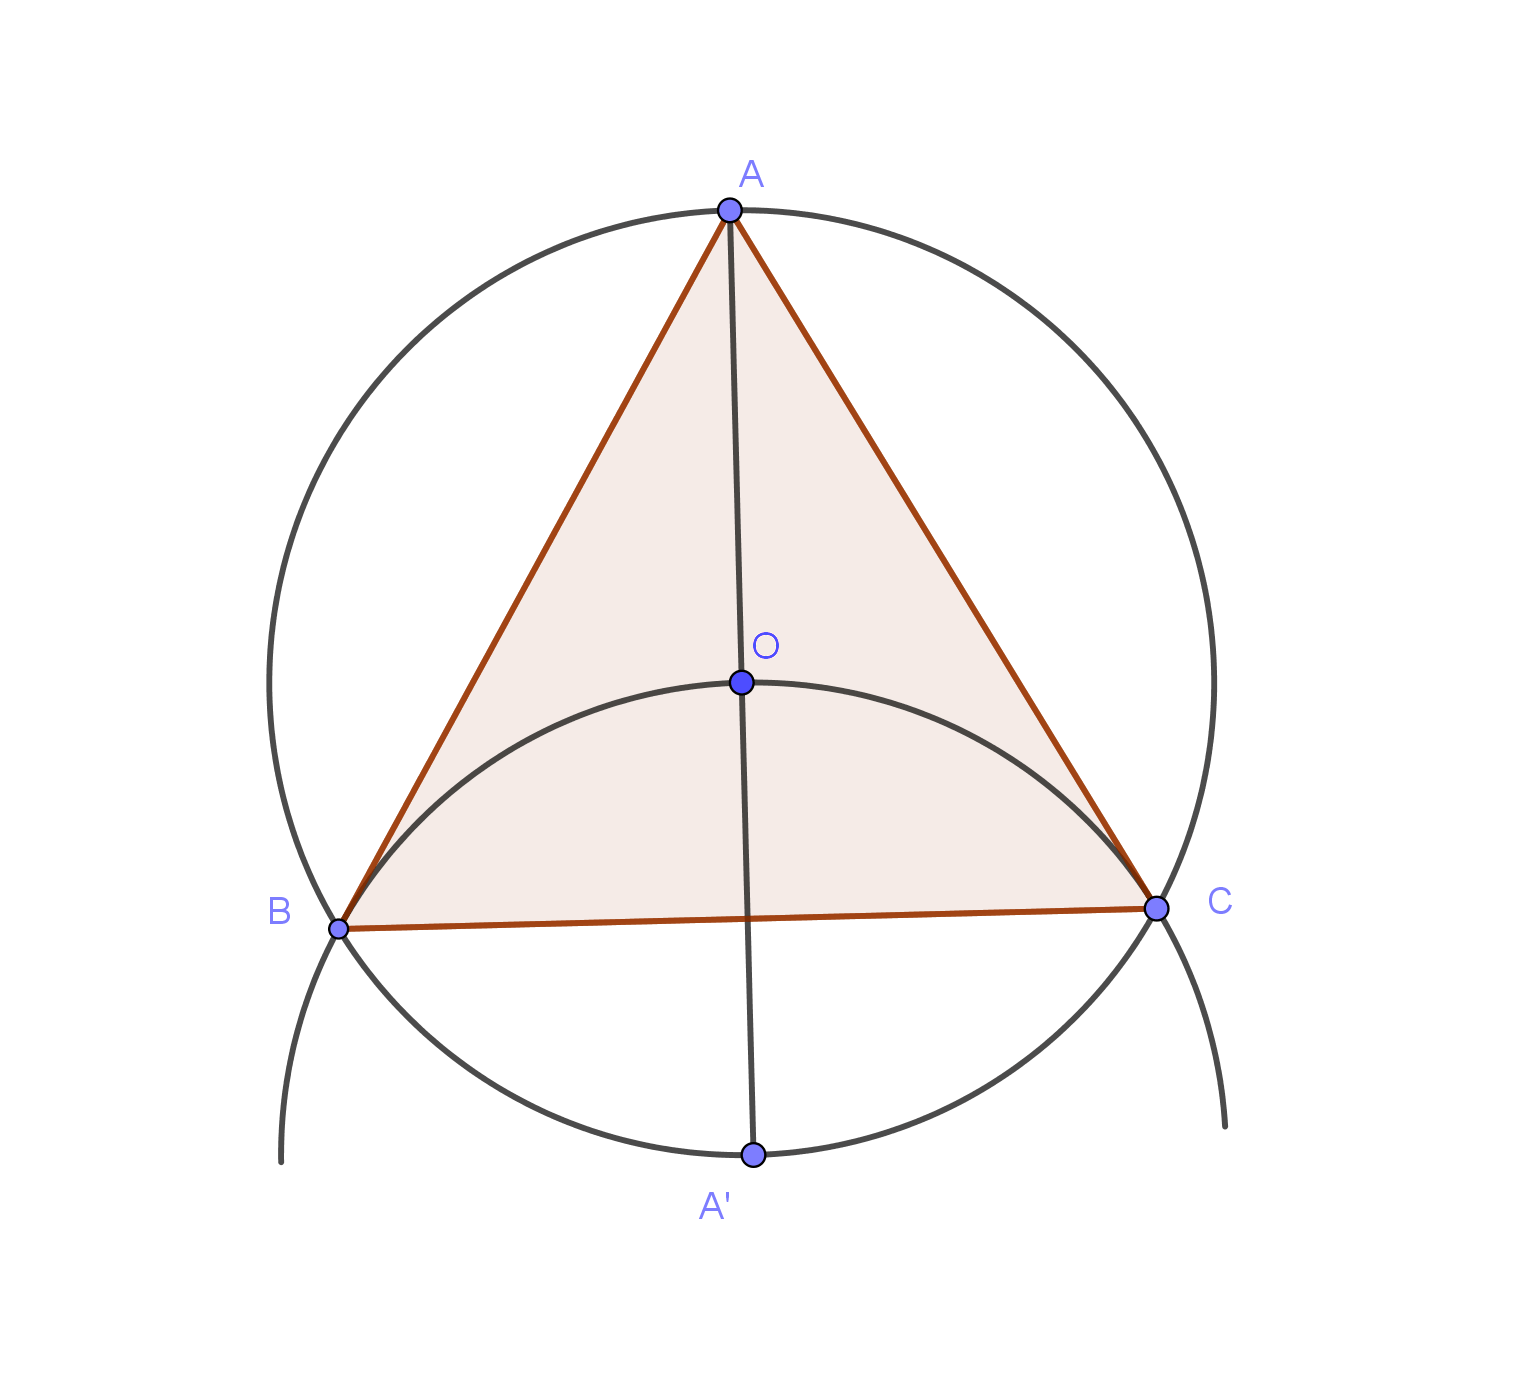 Constructing Regular Polygons